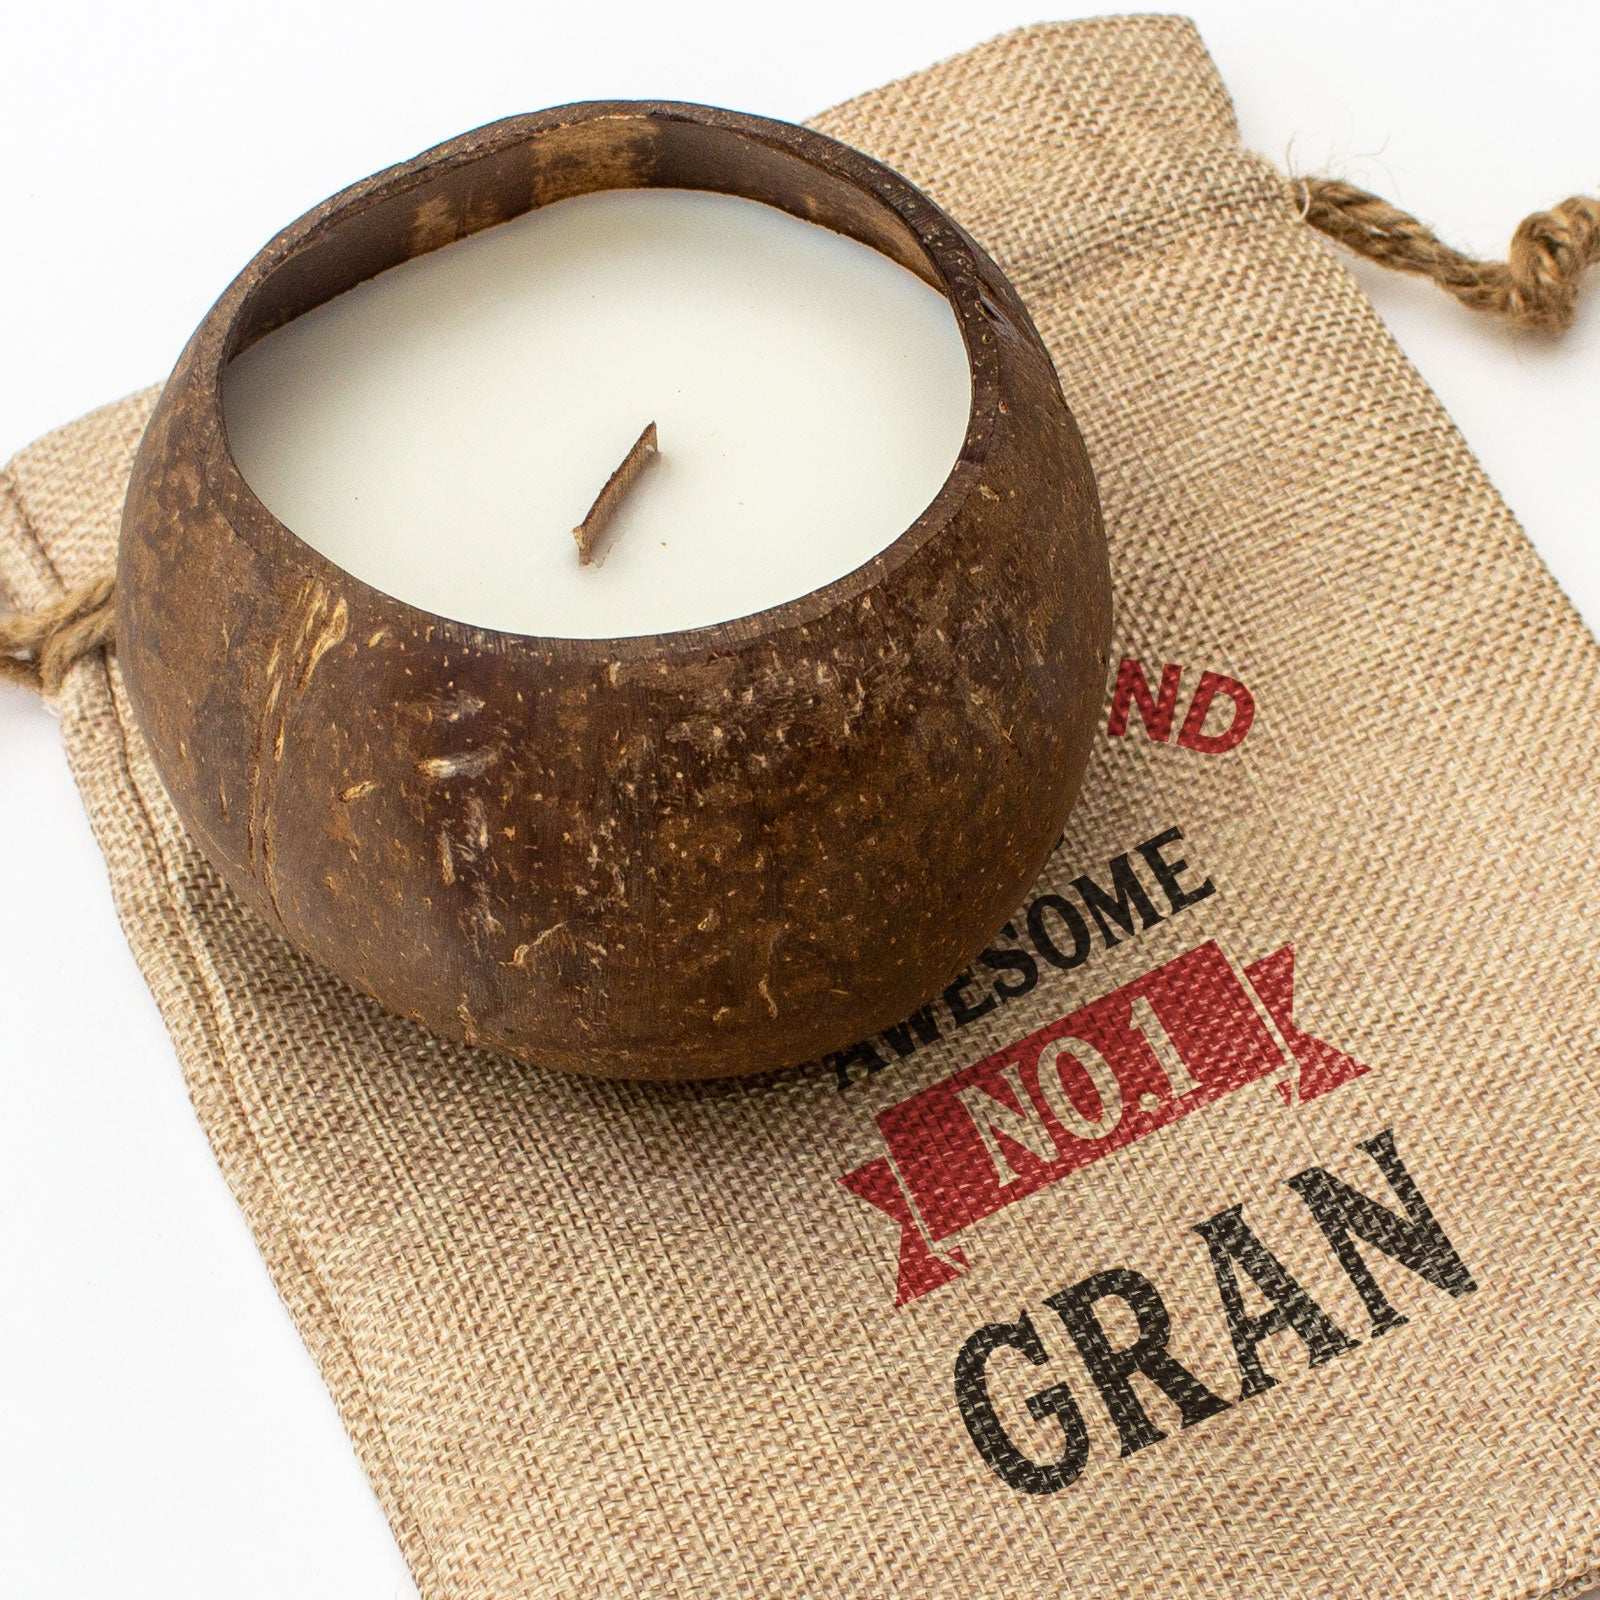 No.1 GRAN - Toasted Coconut Bowl Candle – Soy Wax - Gift Present